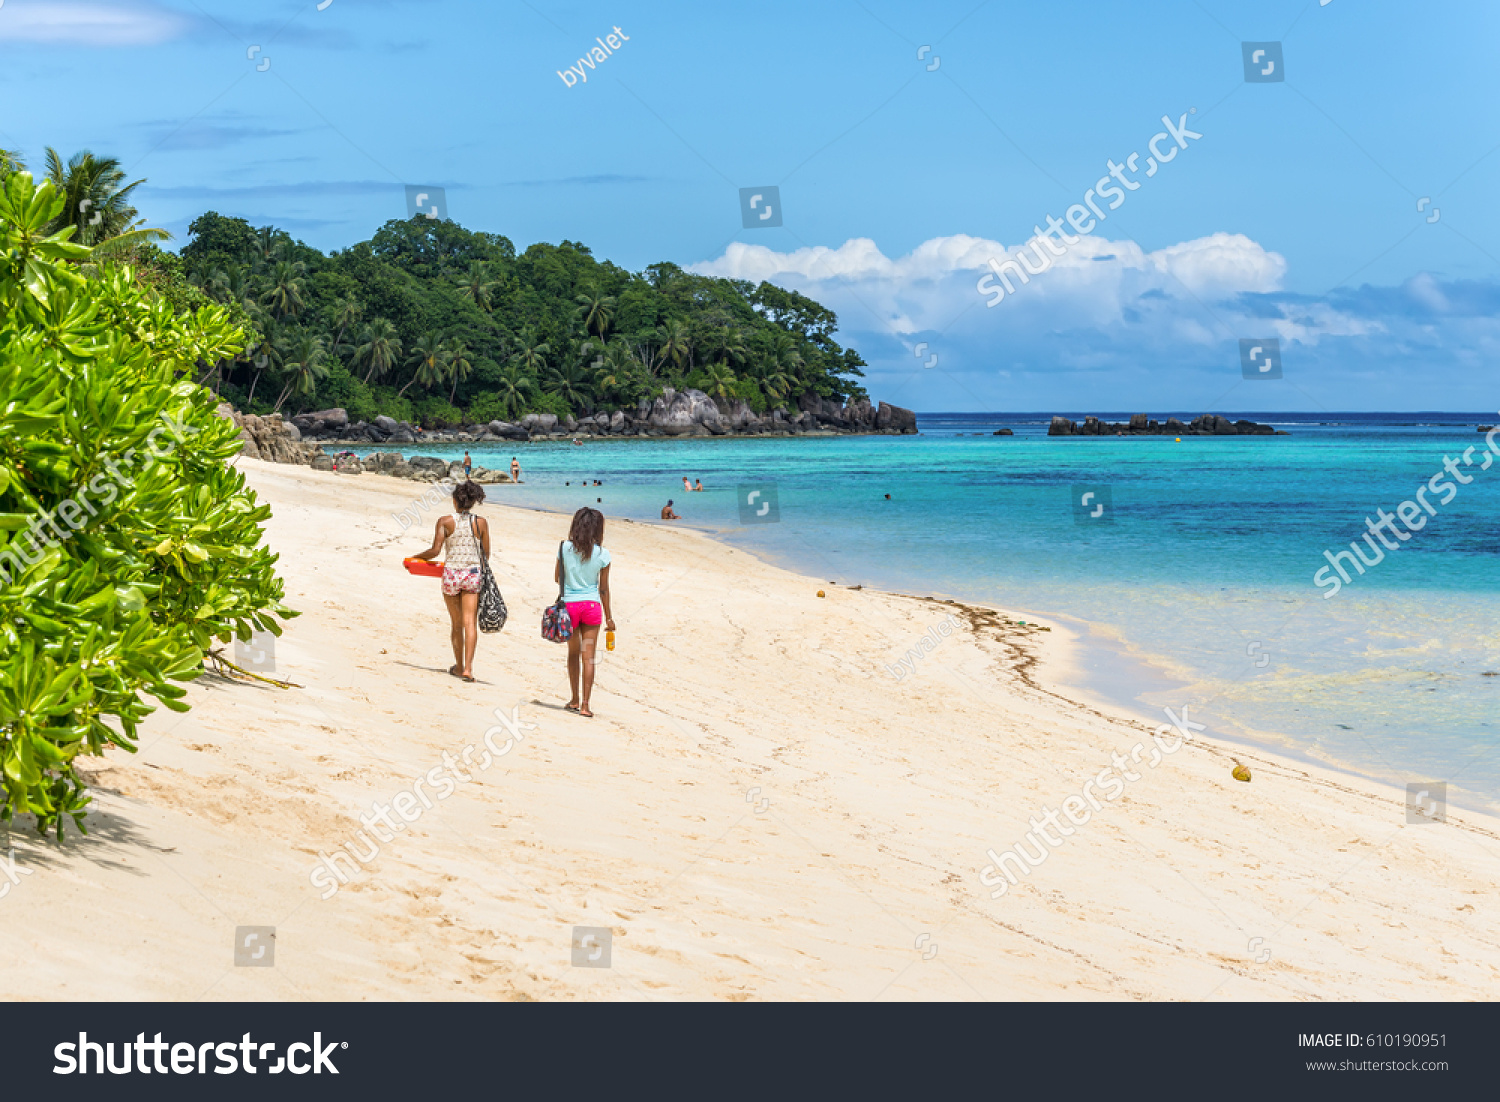 Anse Royale Mahe Seychelles December 152015 Stock Photo